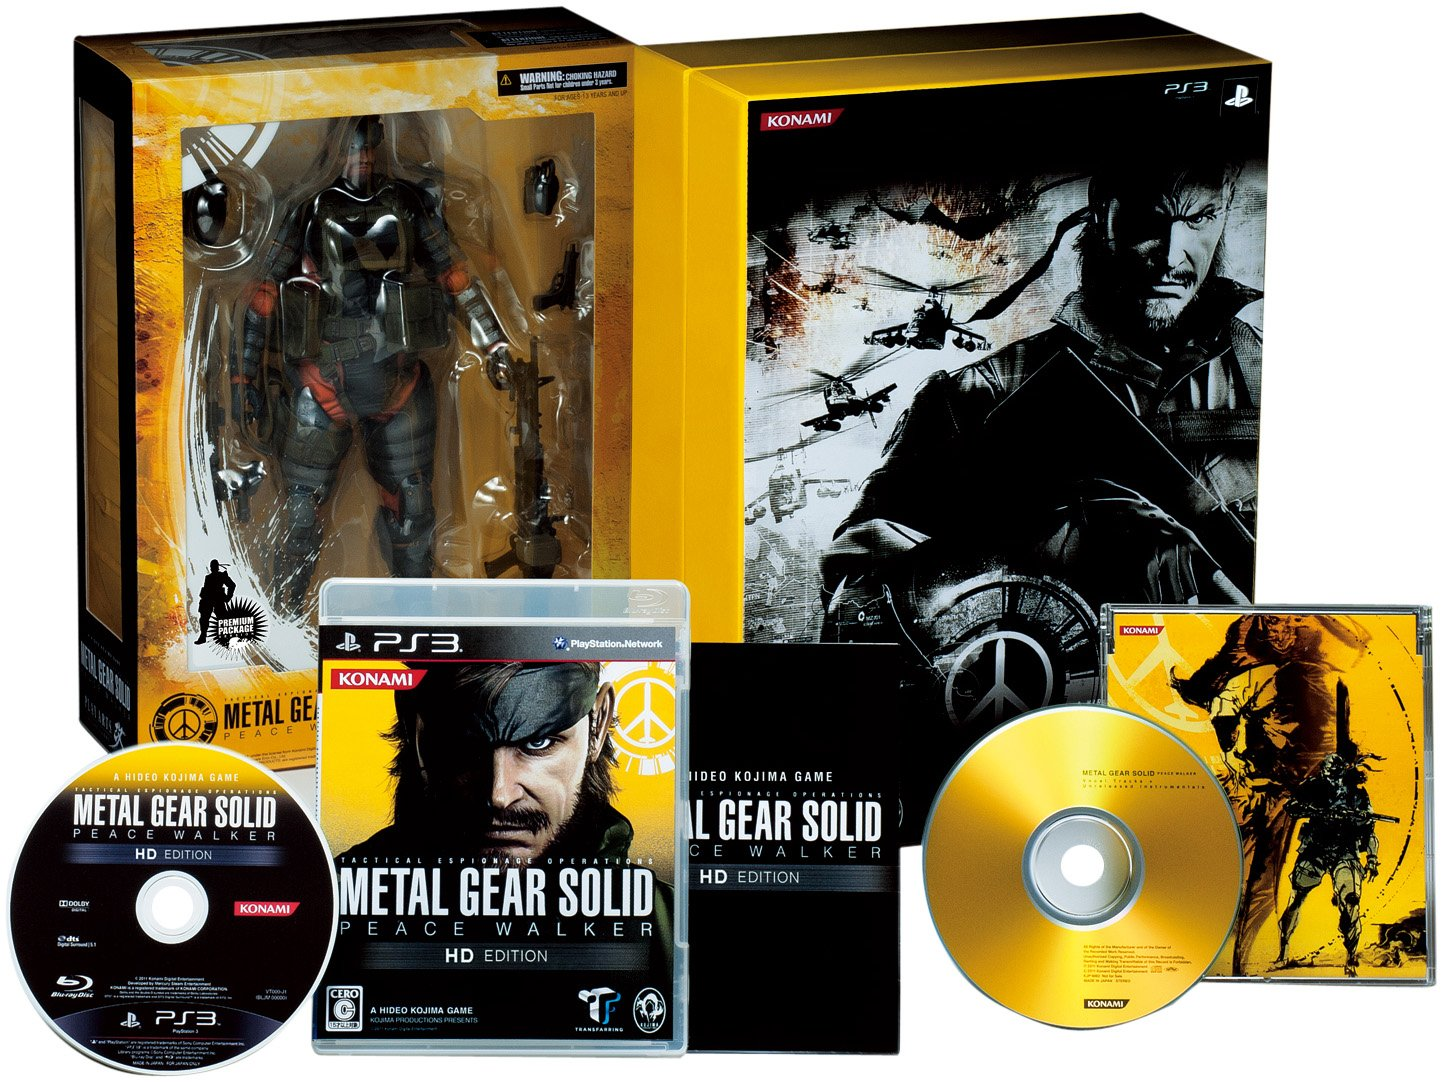 Metal Gear Solid: Peace Walker HD Edition [Limited Edition] [Japan Import]